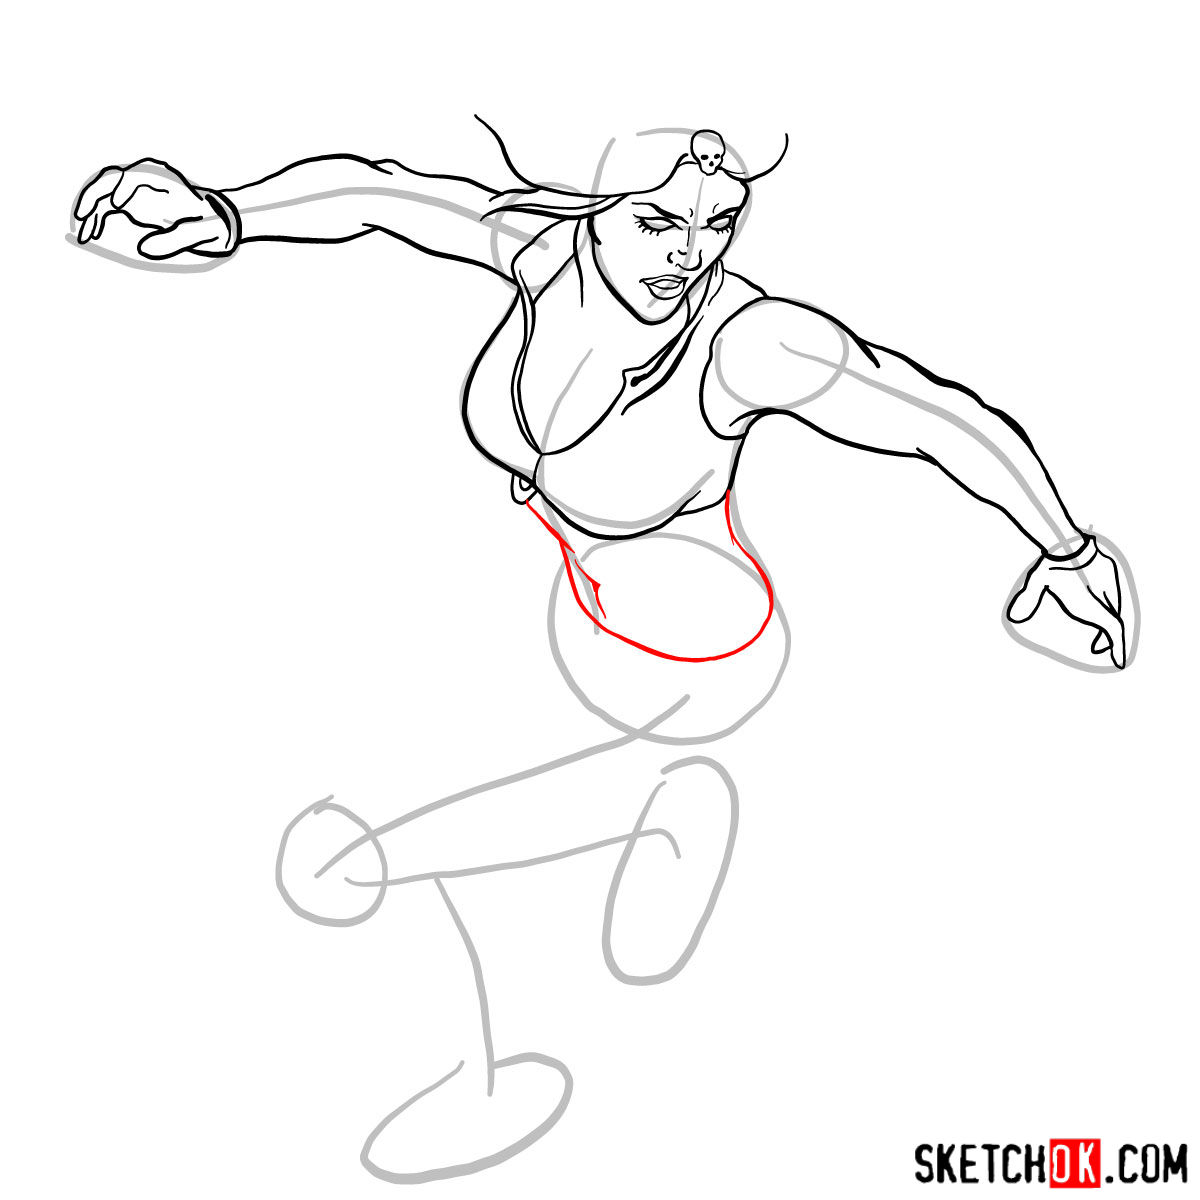 How to draw Mystique (Raven Darkhölme) from Marvel X-Men comics - step 10